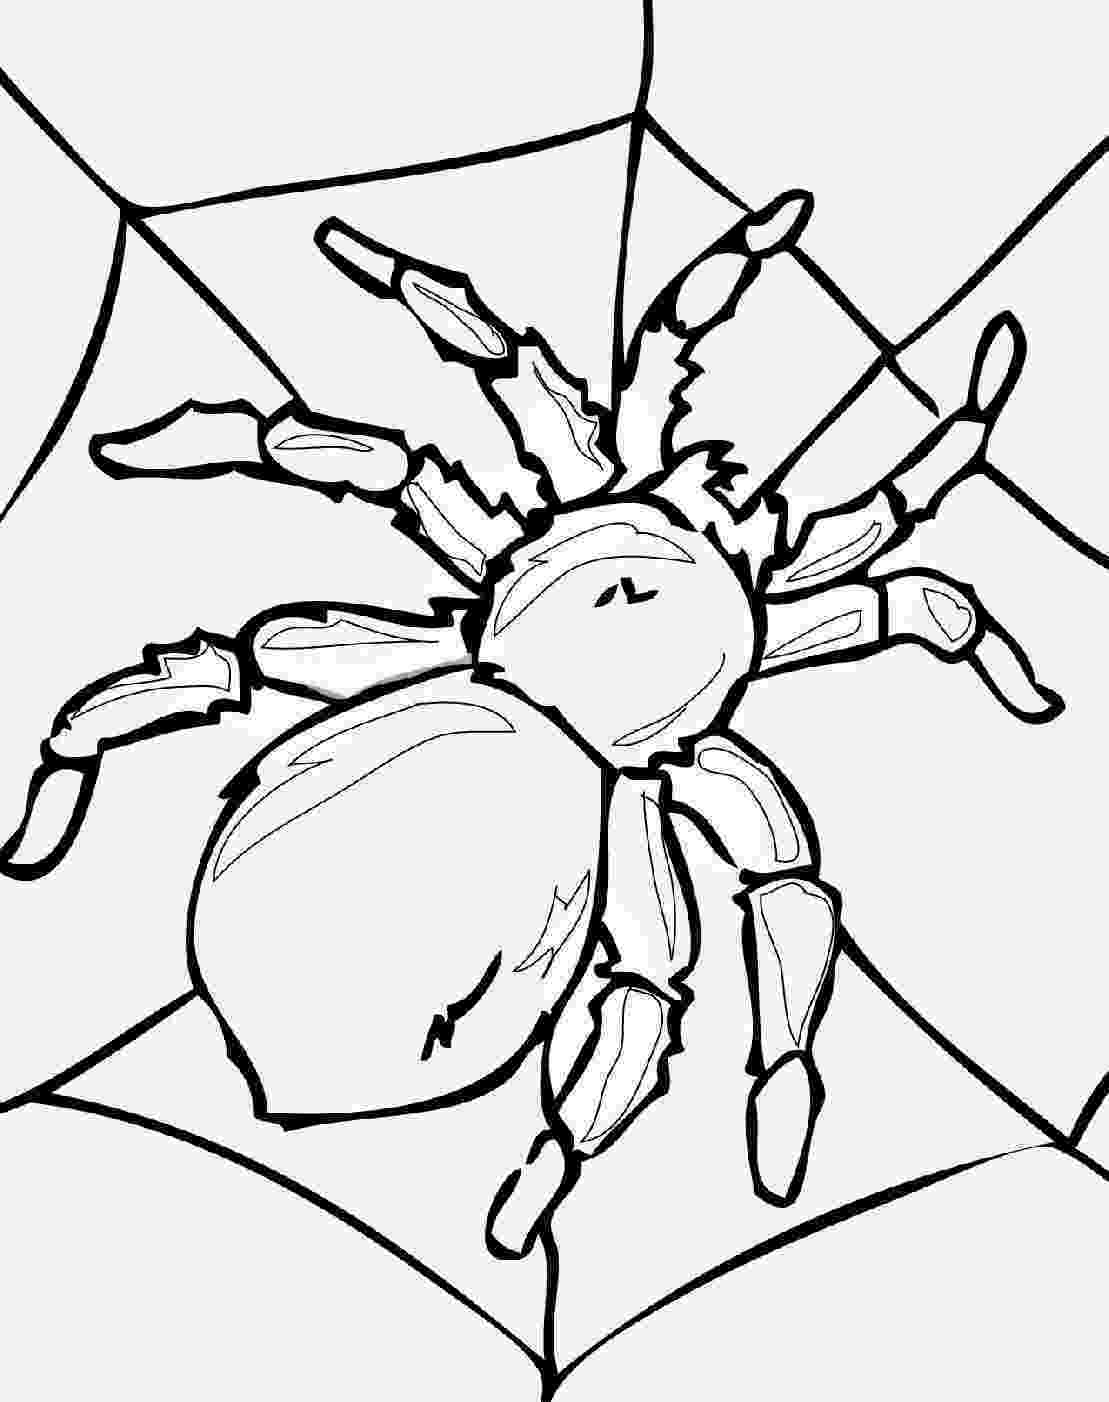 pictures of insects to color bug coloring pages surfnetkids to pictures color insects of